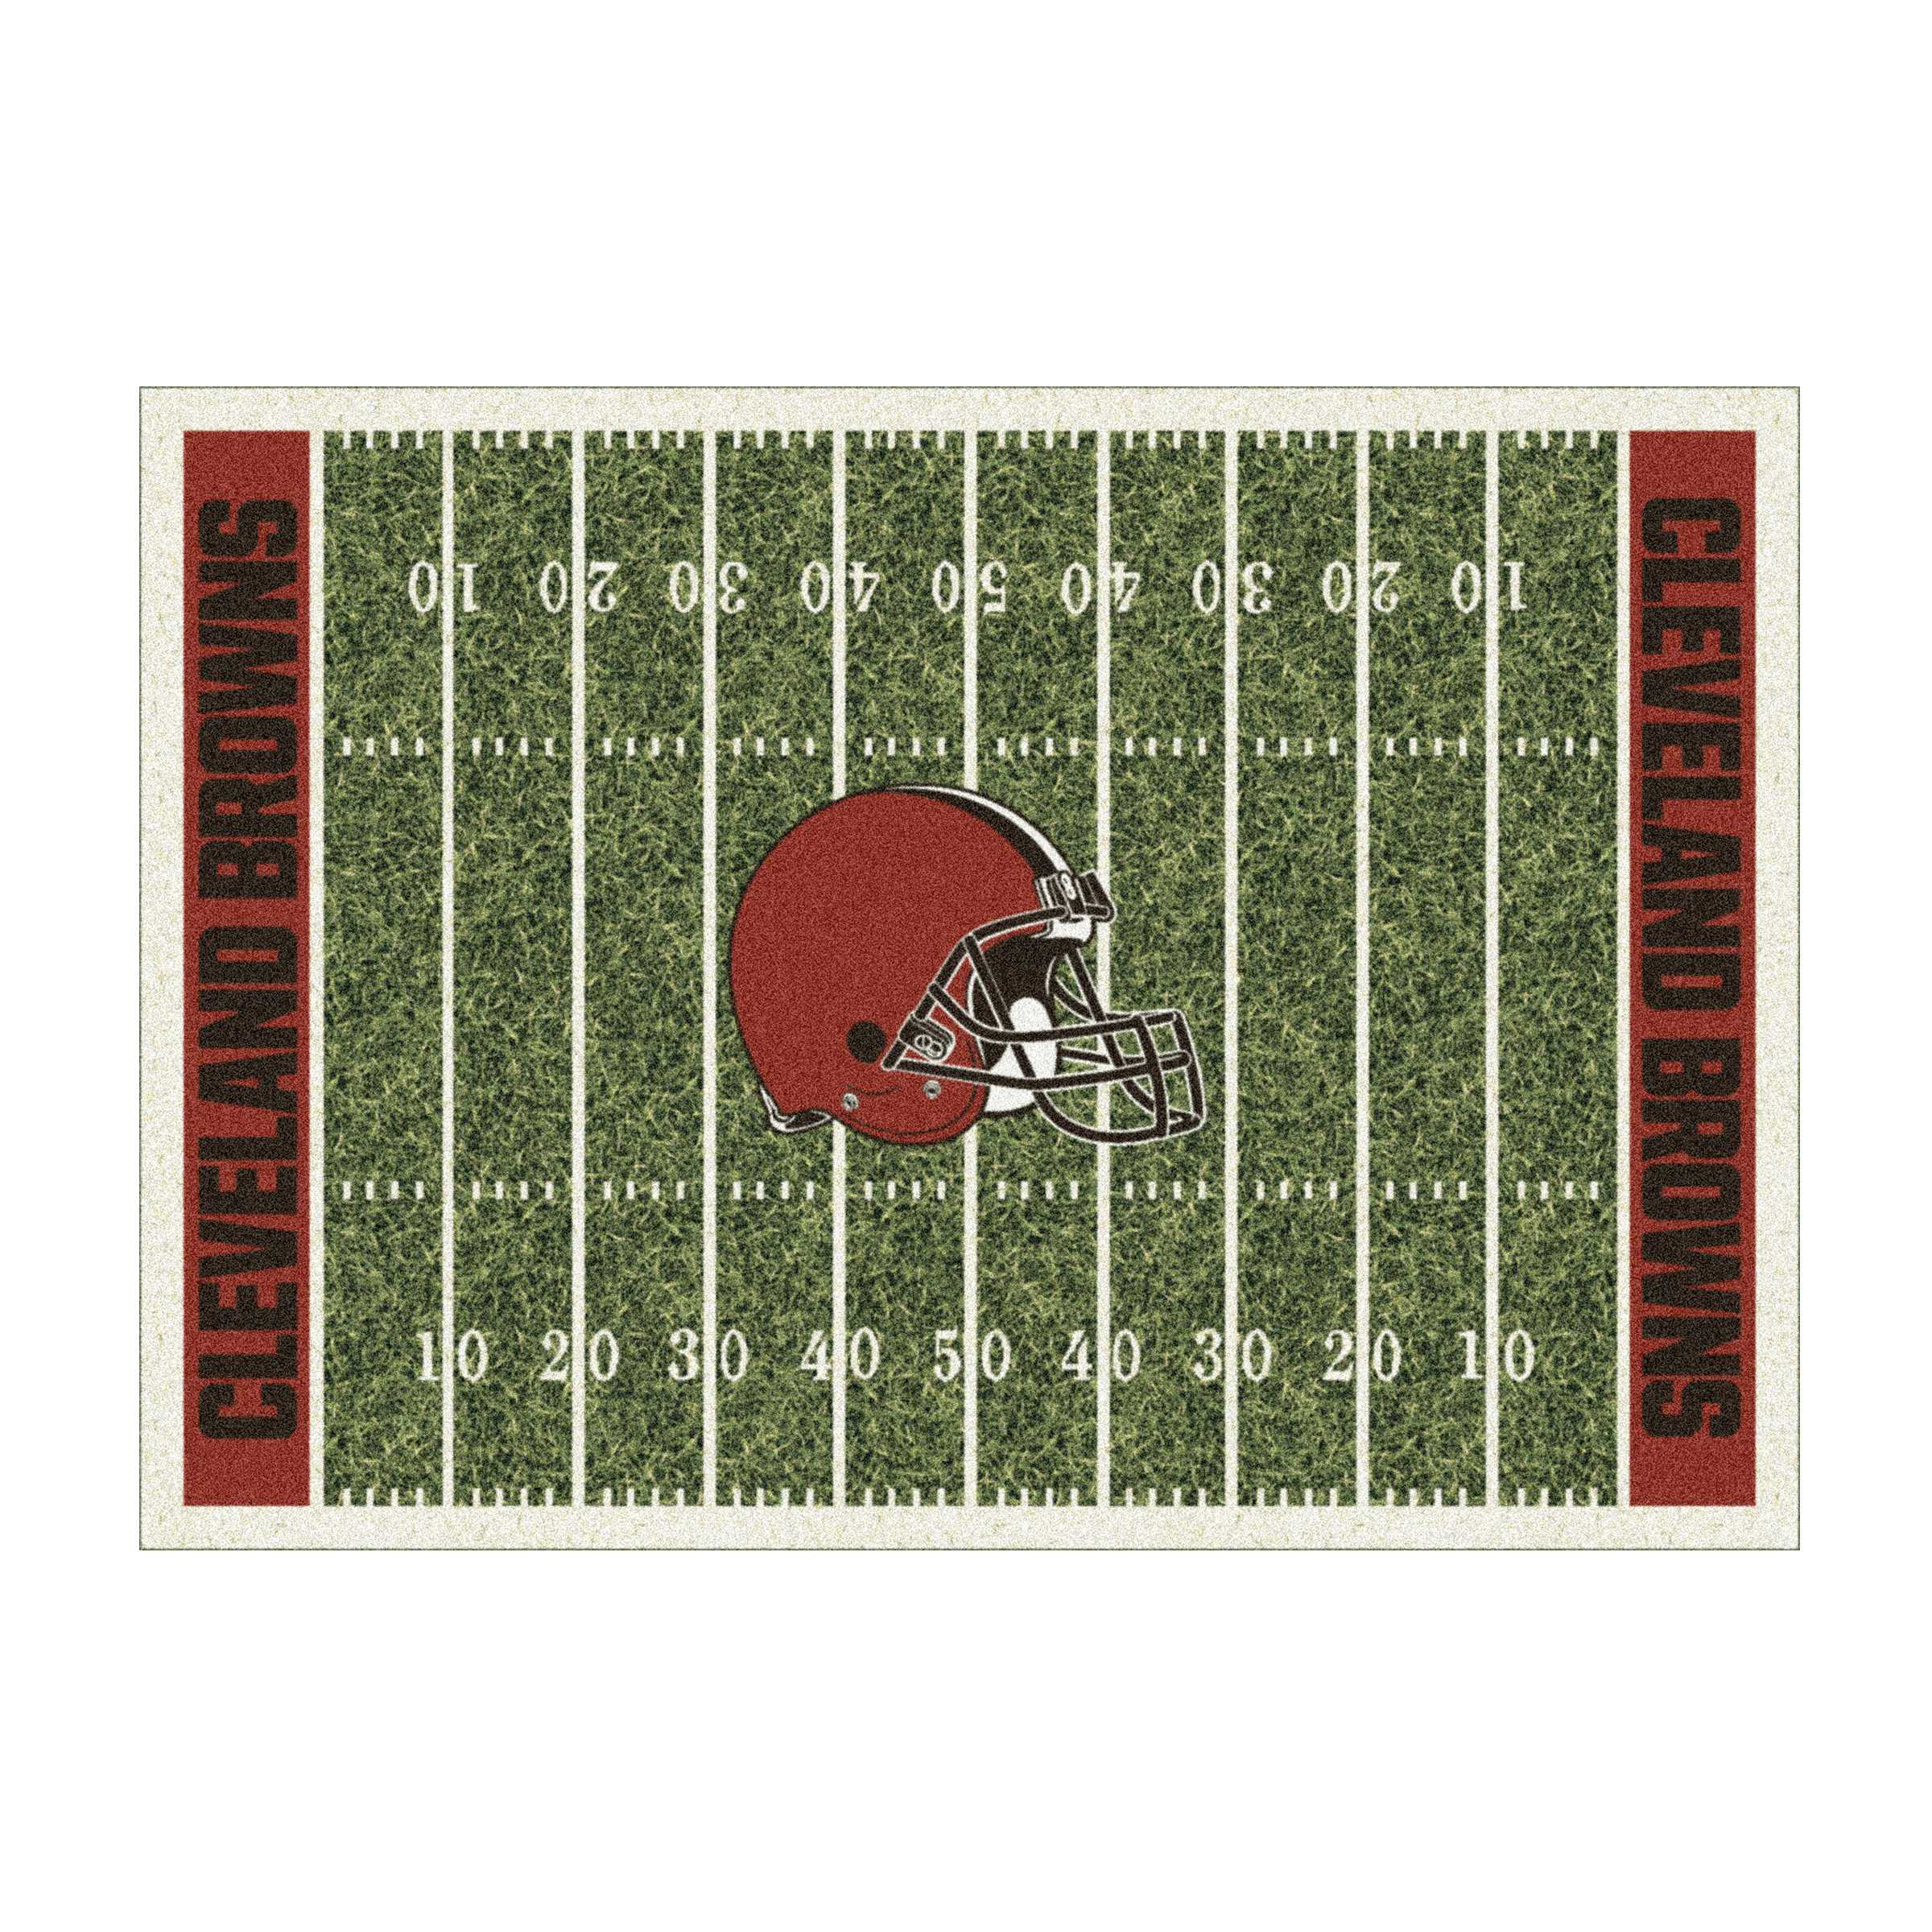 CLEVELAND BROWNS 6X8 HOMEFIELD RUG